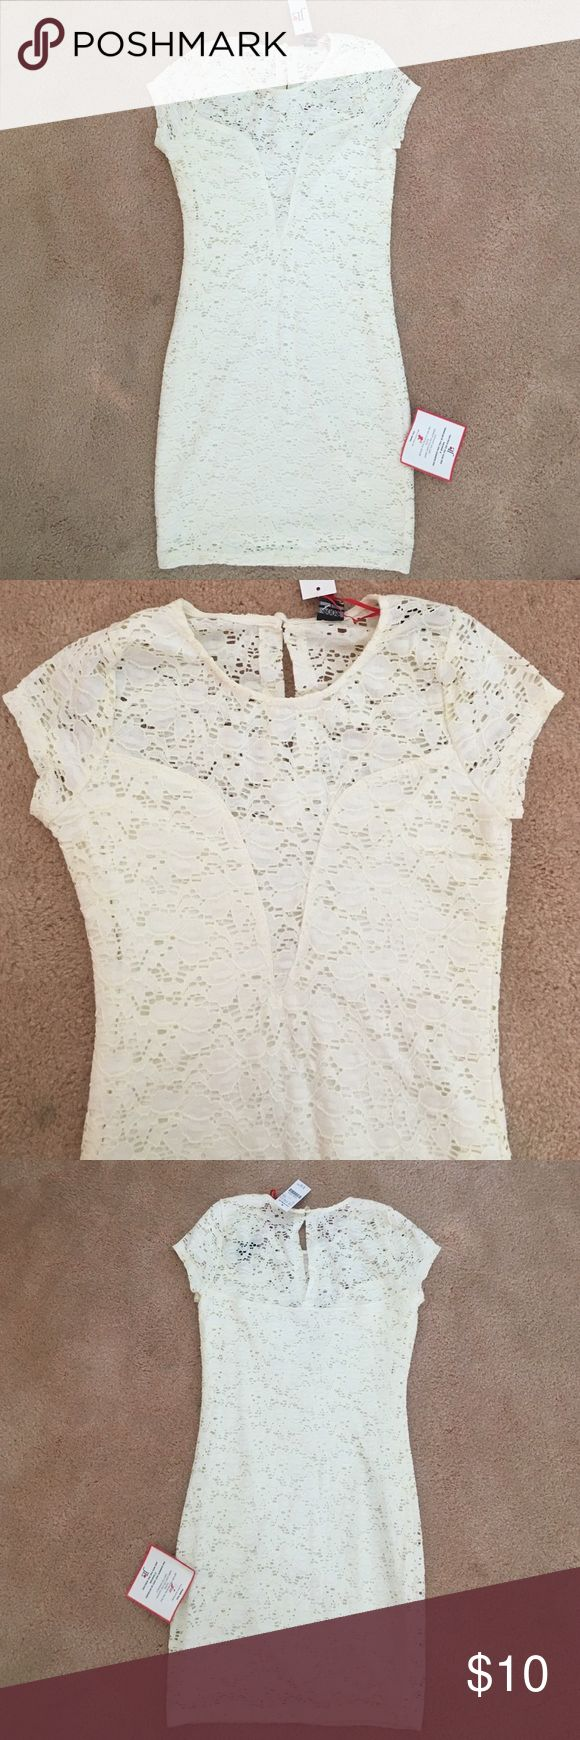 Off White Lace Bodycon Dress Off White Lace dress with an open Lace V-Cut. Form-fitting bodycon dress with a great, comfortable stretch to it. Size Large. New With Tags Dresses Mini